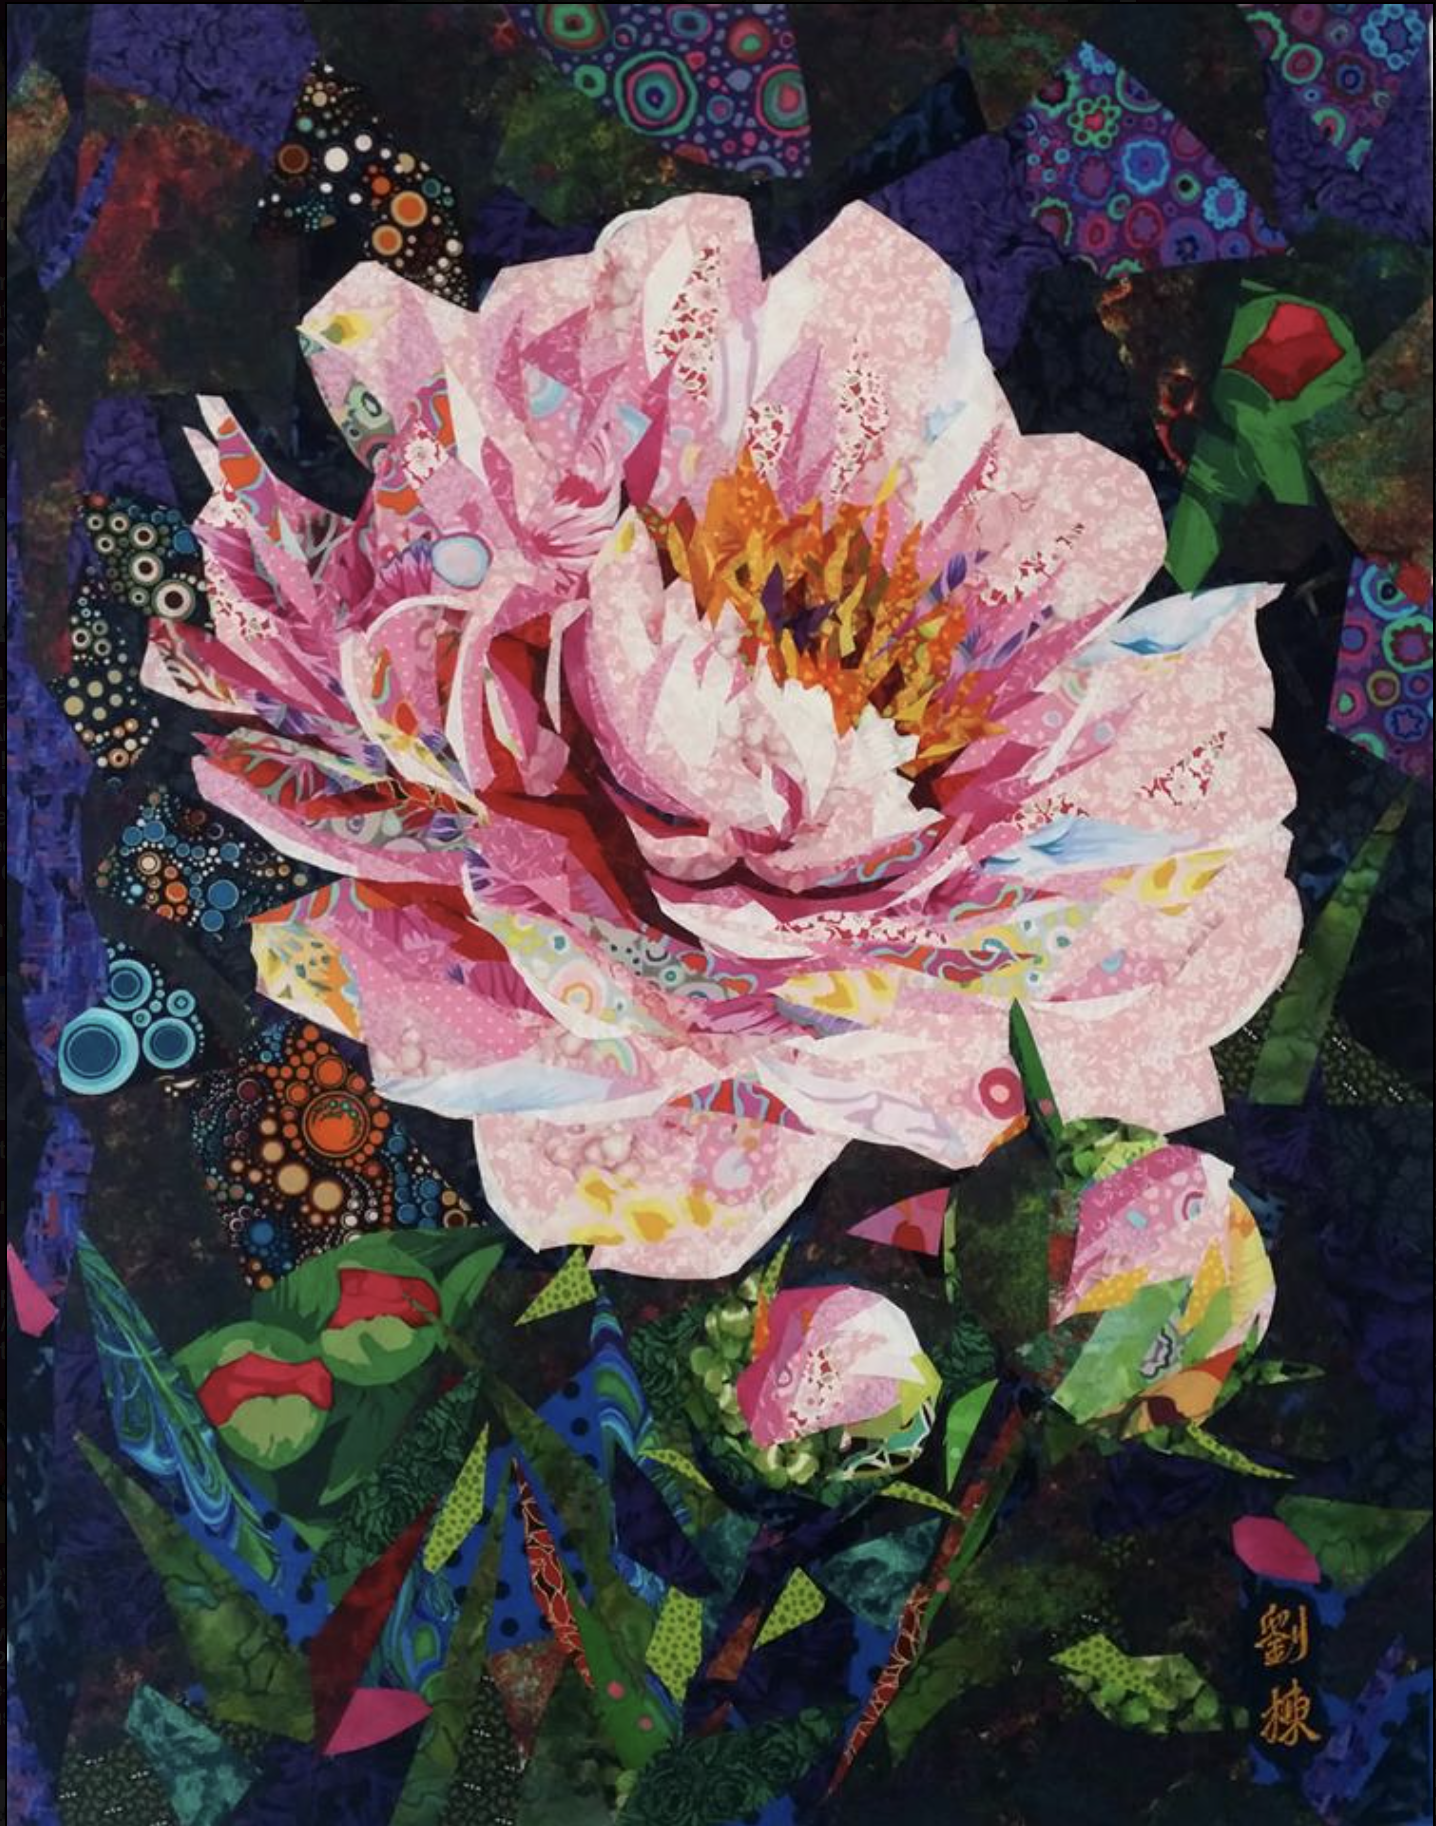 A Larger Image Of The Peony By Danny Amazonas